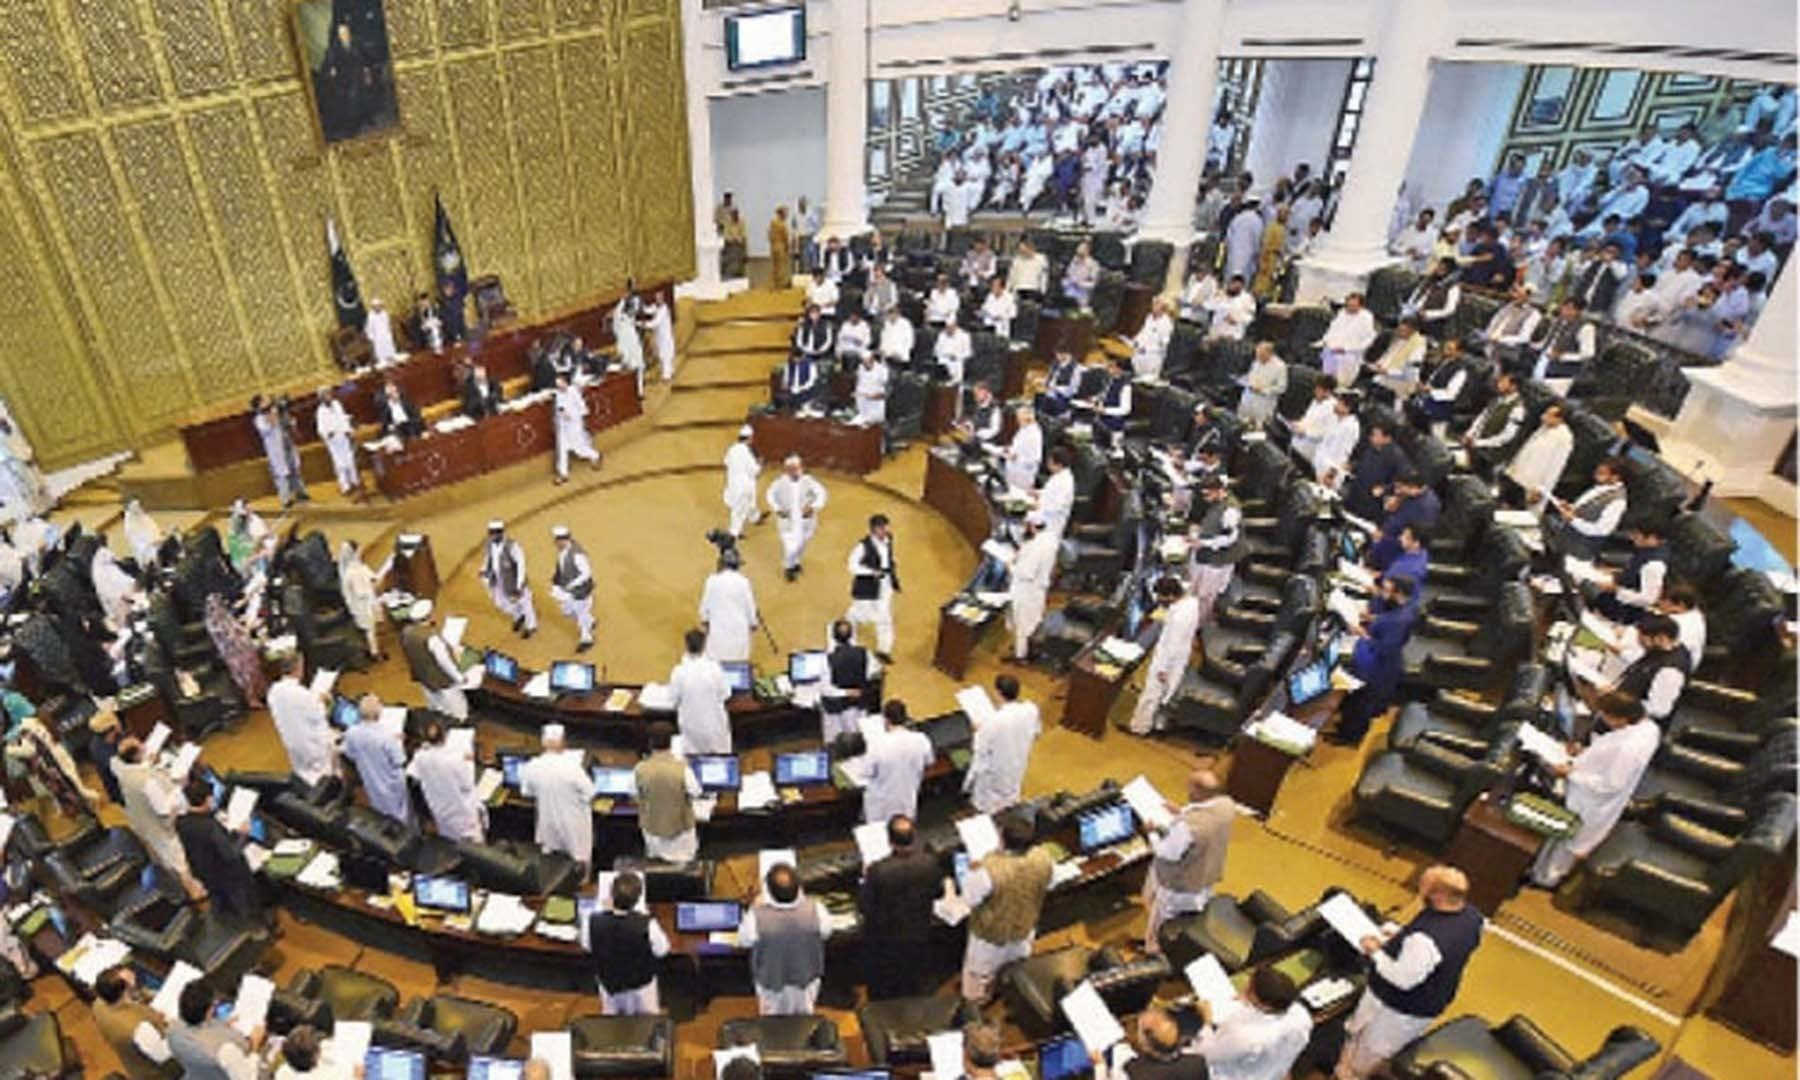 All standing committees of the Khyber Pakhtunkhwa Assembly were dissolved on Monday for inducting lawmakers from the merged tribal districts as uproar by the opposition marred the house proceedings for the fourth working day. — Photo courtesy Abdul Majeed Goraya/File